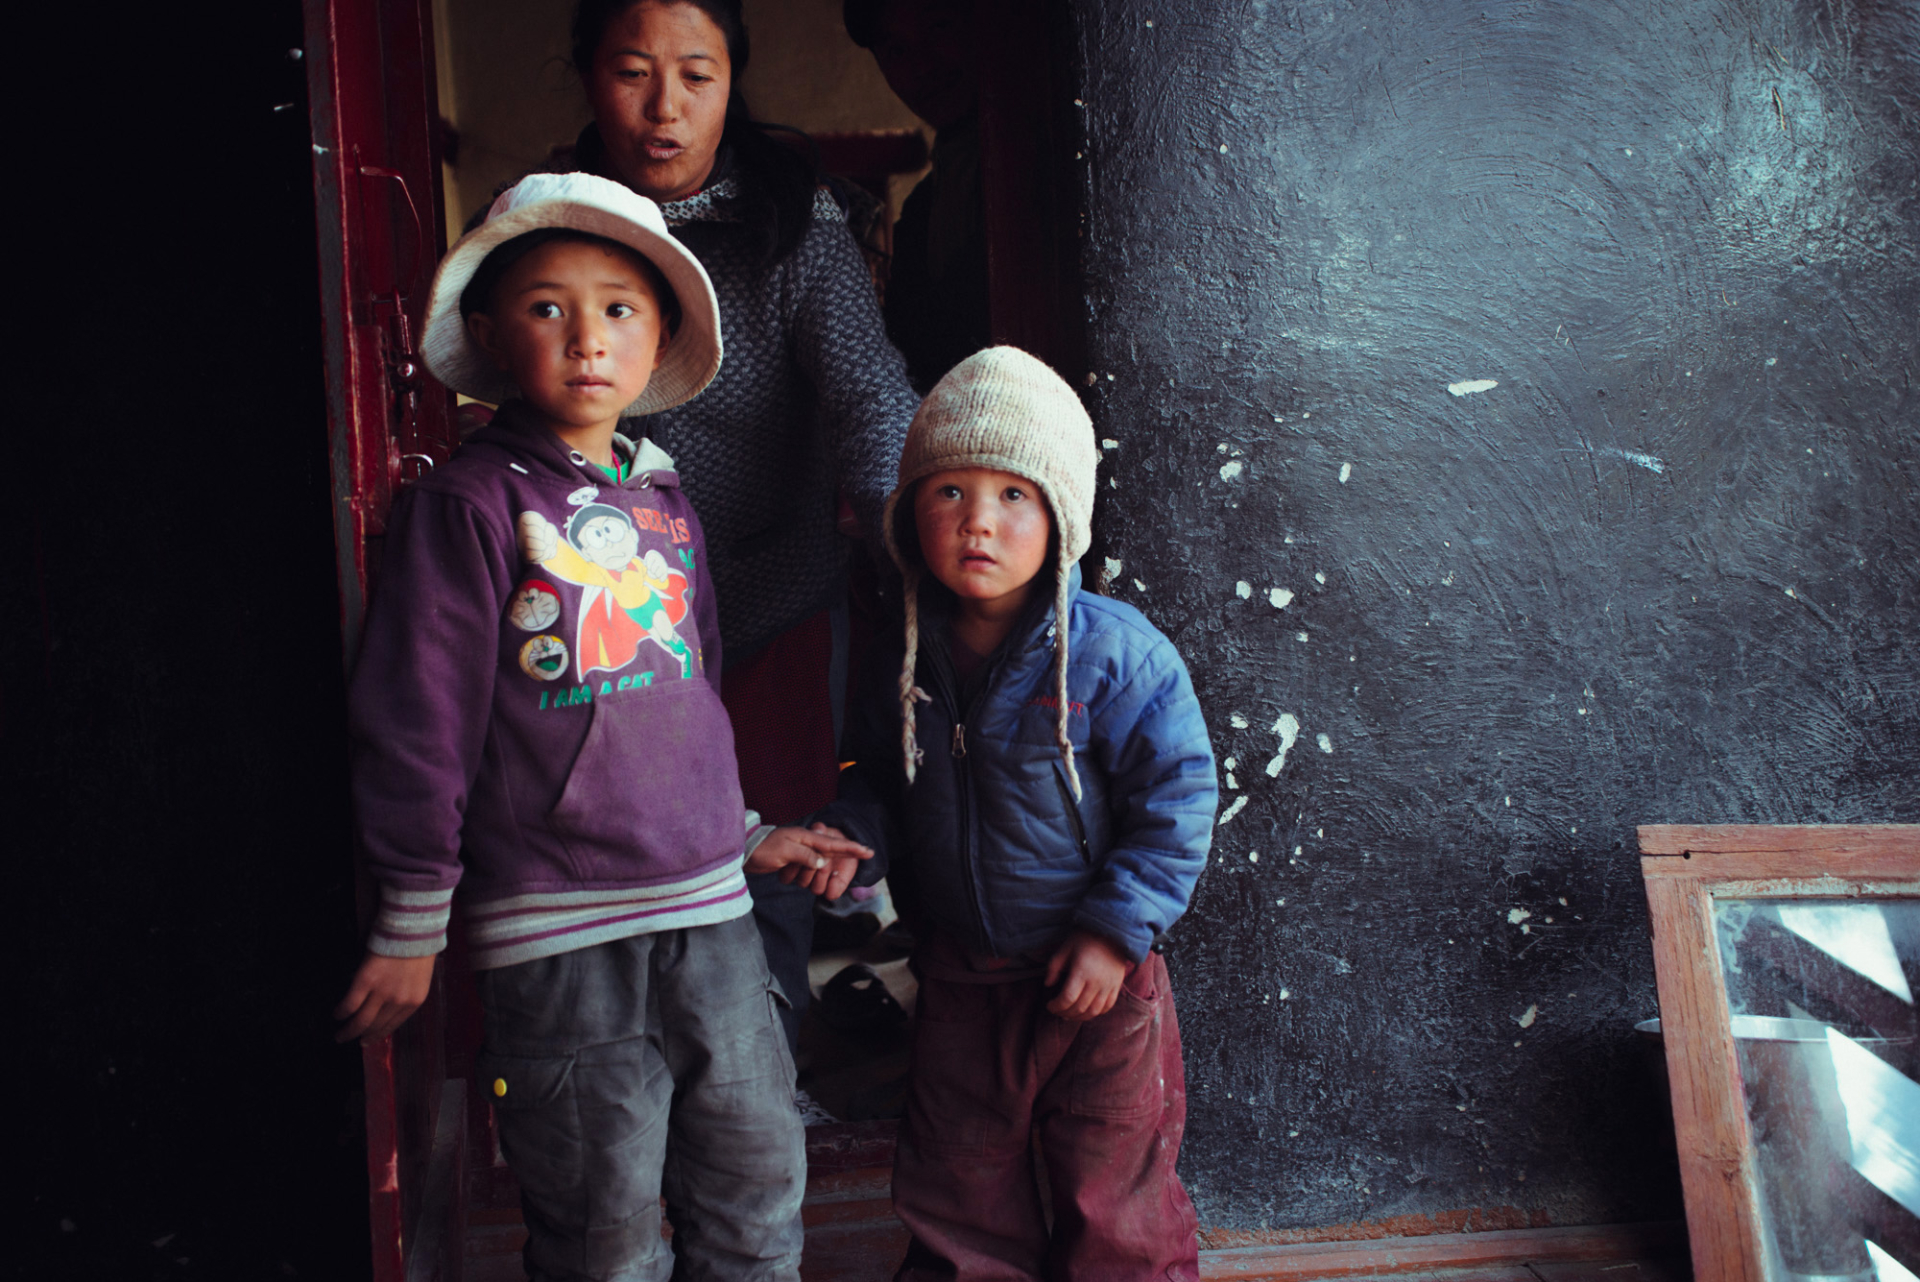 Children of Zanskar 28th Jan '16 — Jackets, Shoes & Smiles!